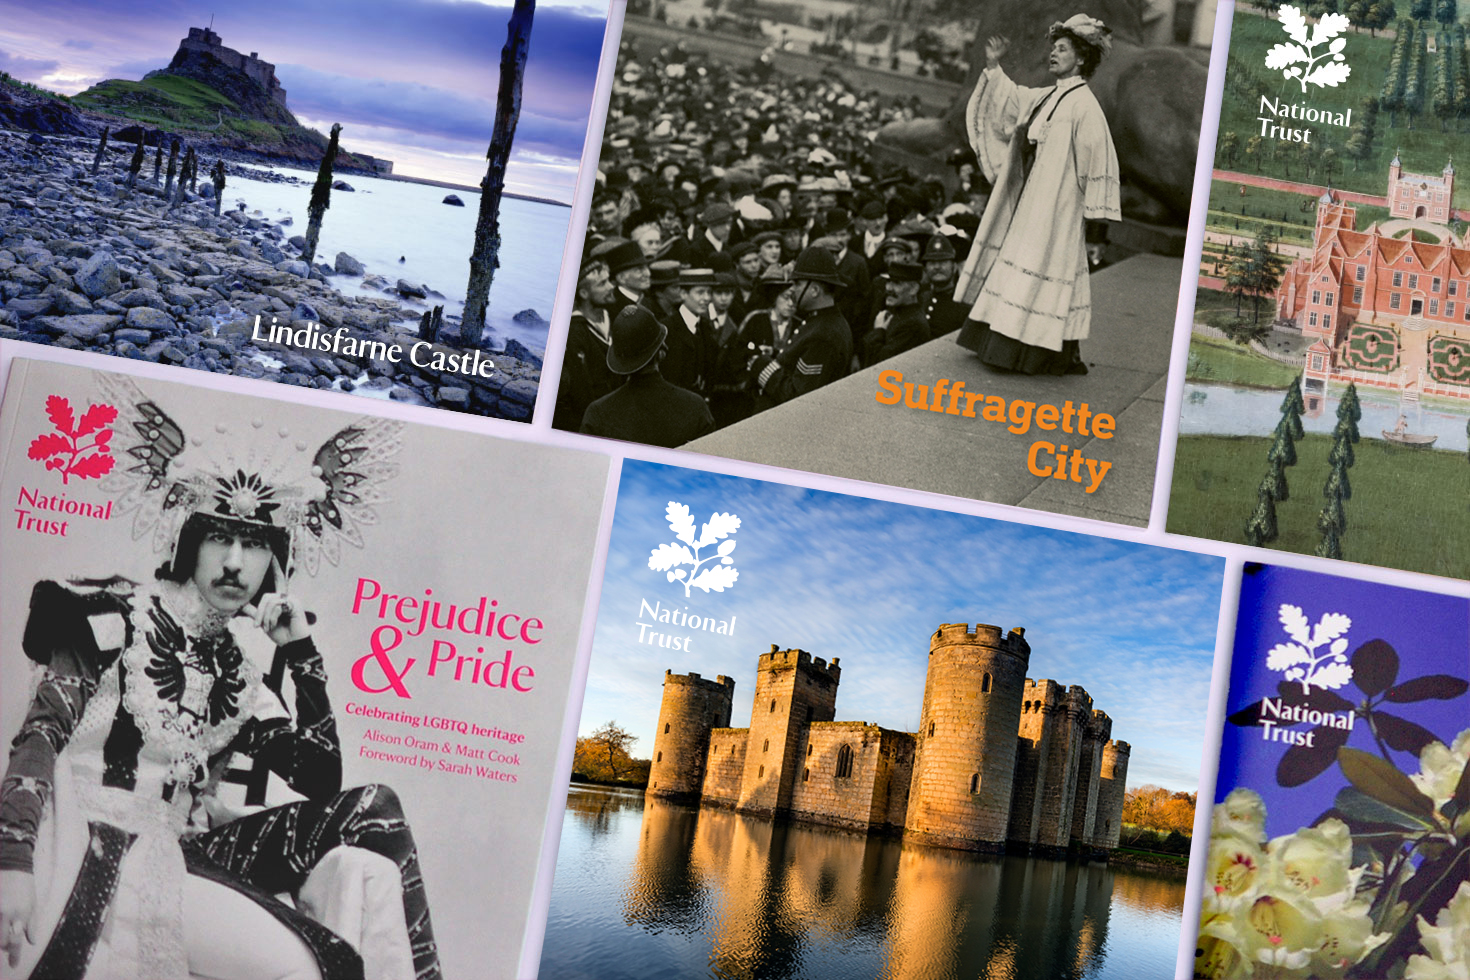 National Trust covers